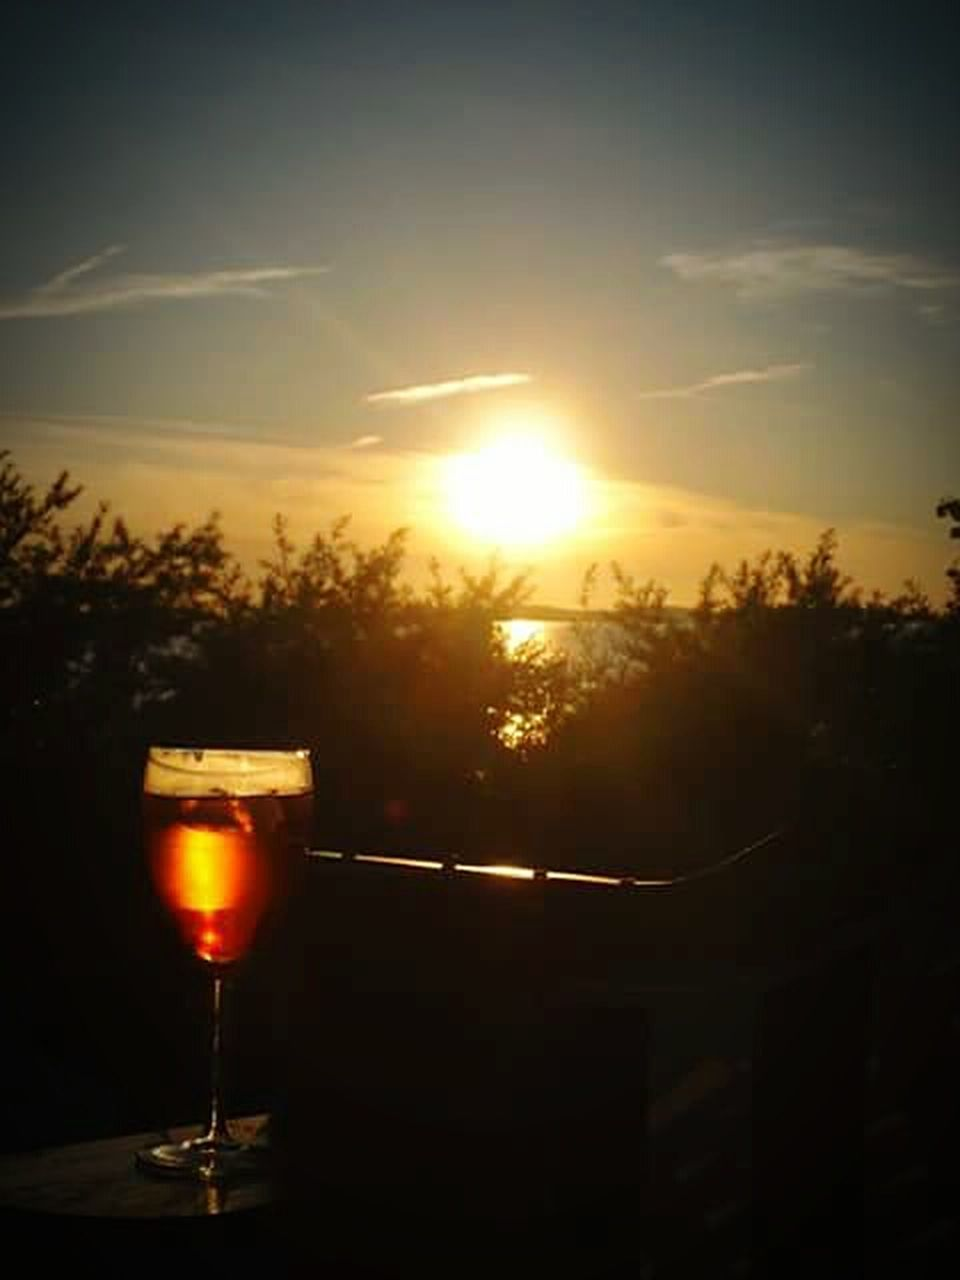 sunset, sun, no people, silhouette, alcohol, tree, sunlight, wine, sky, beauty in nature, nature, drink, outdoors, close-up, day